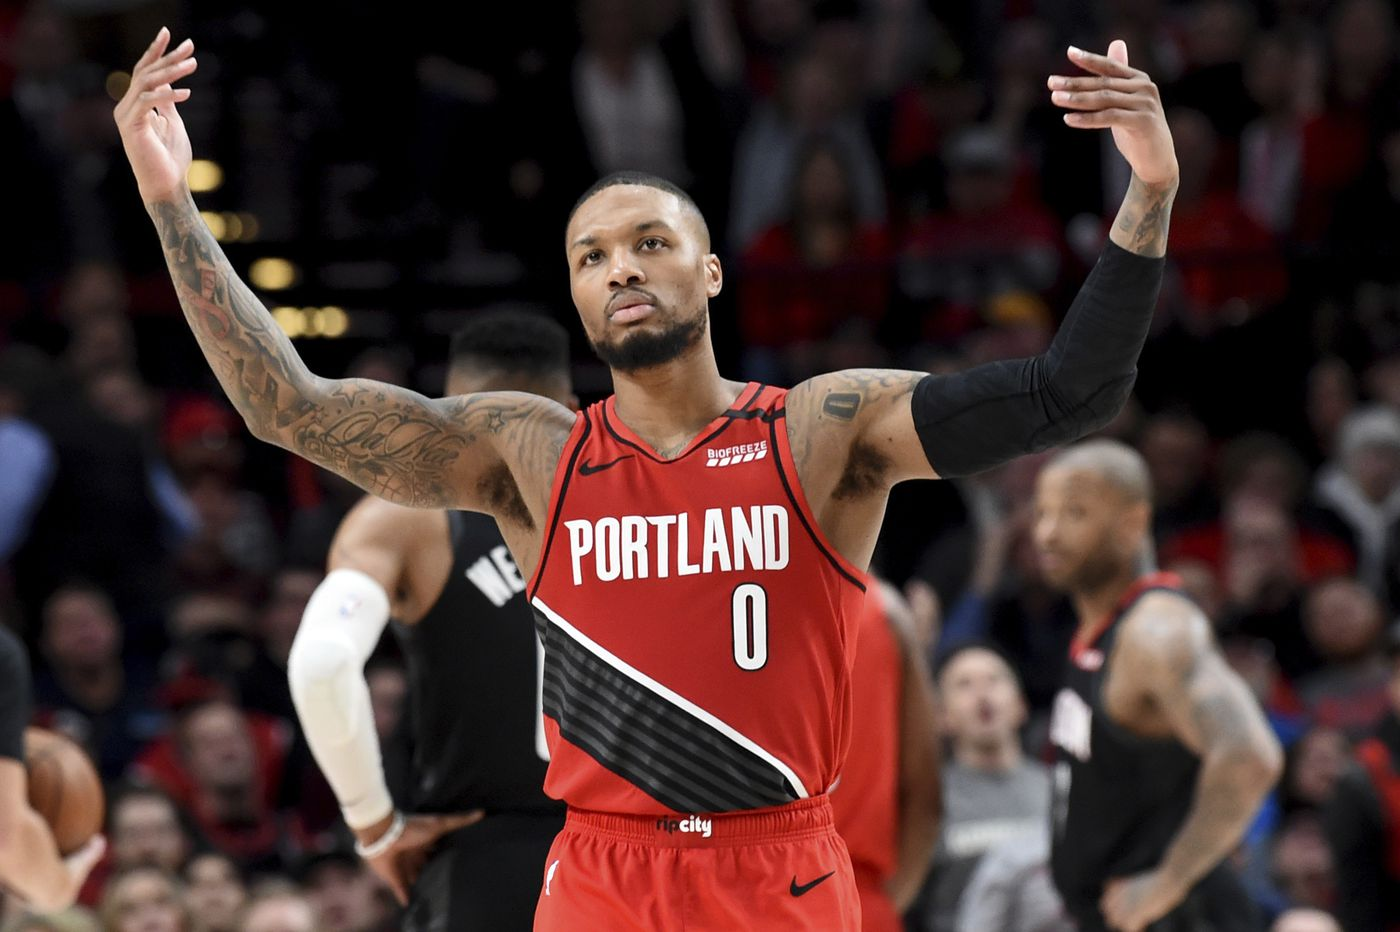 There's an NBA playoff format that would satisfy what's best for Damian Lillard and fans everywhere, but it isn't group play | David Murphy